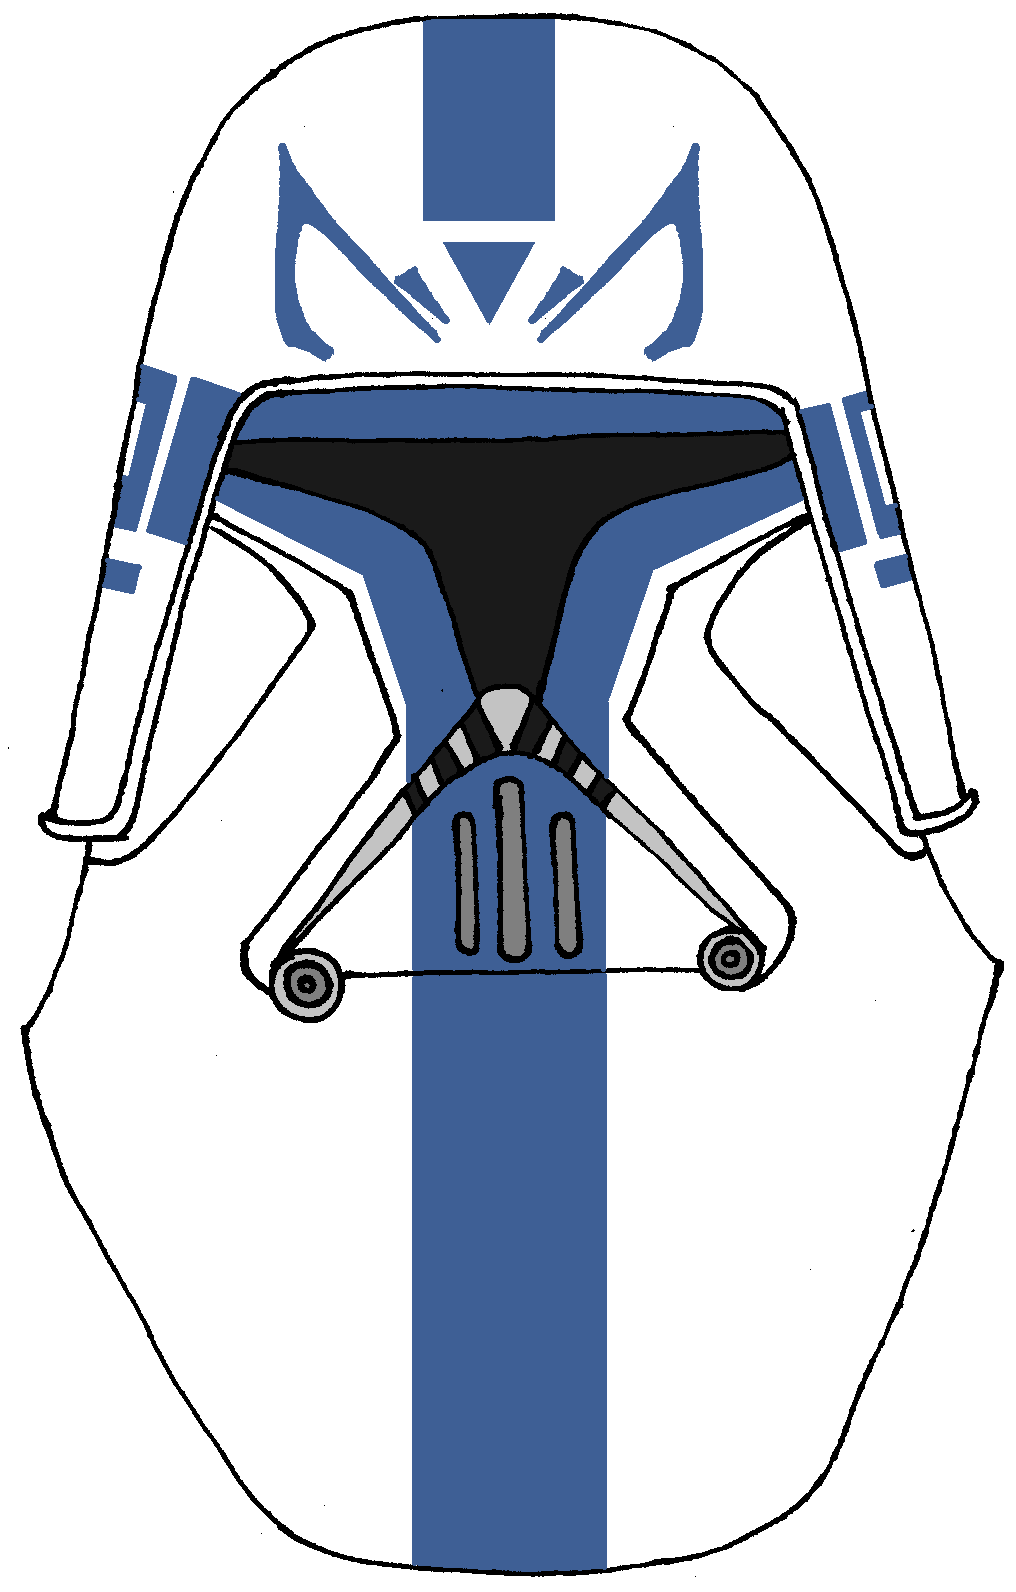 Star Wars Clone Wars Coloring Pages To Print